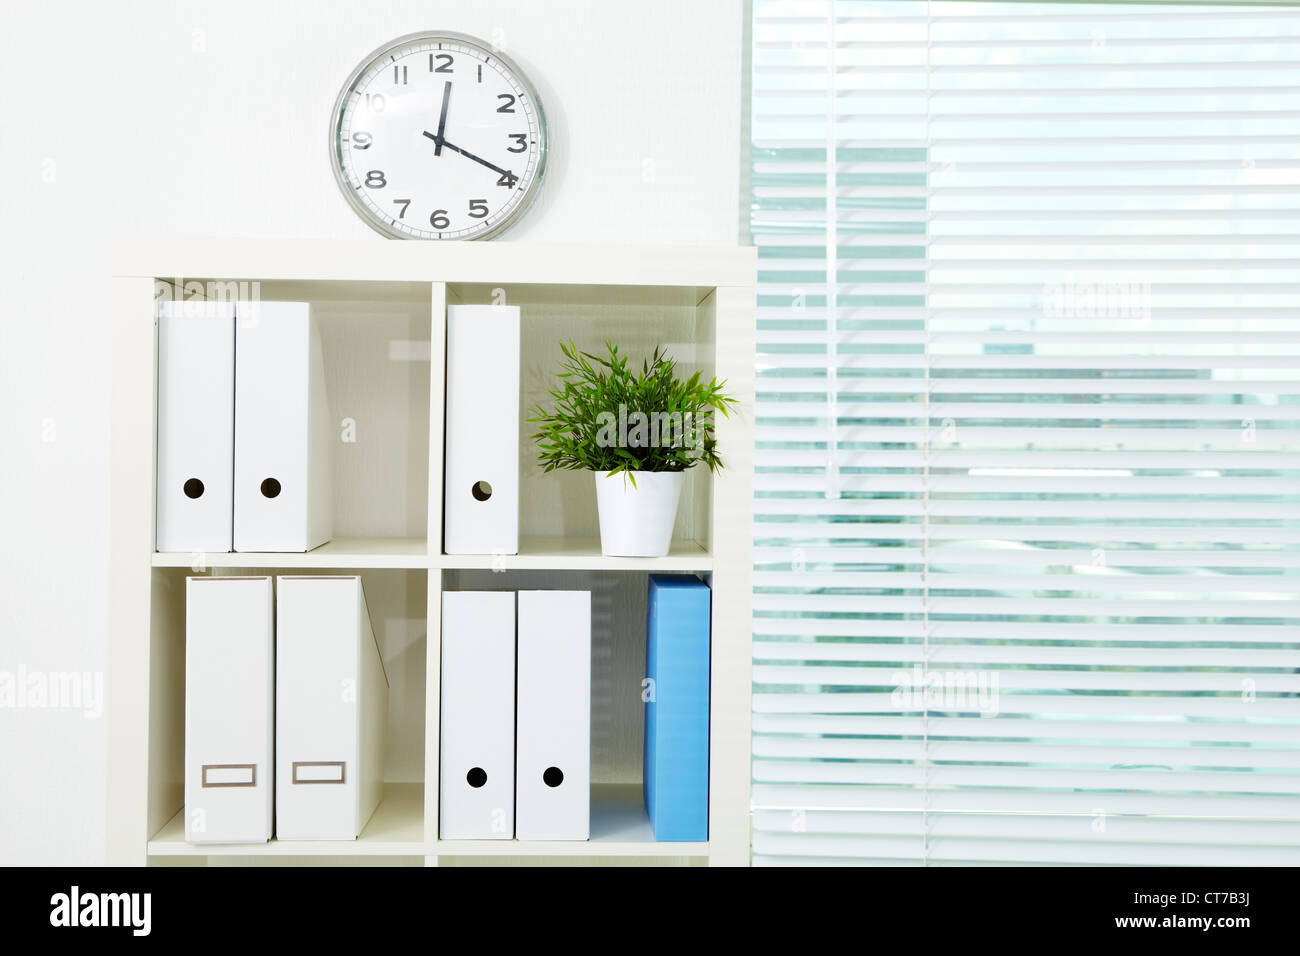 Image of board with documents and green plant in office - Stock Image